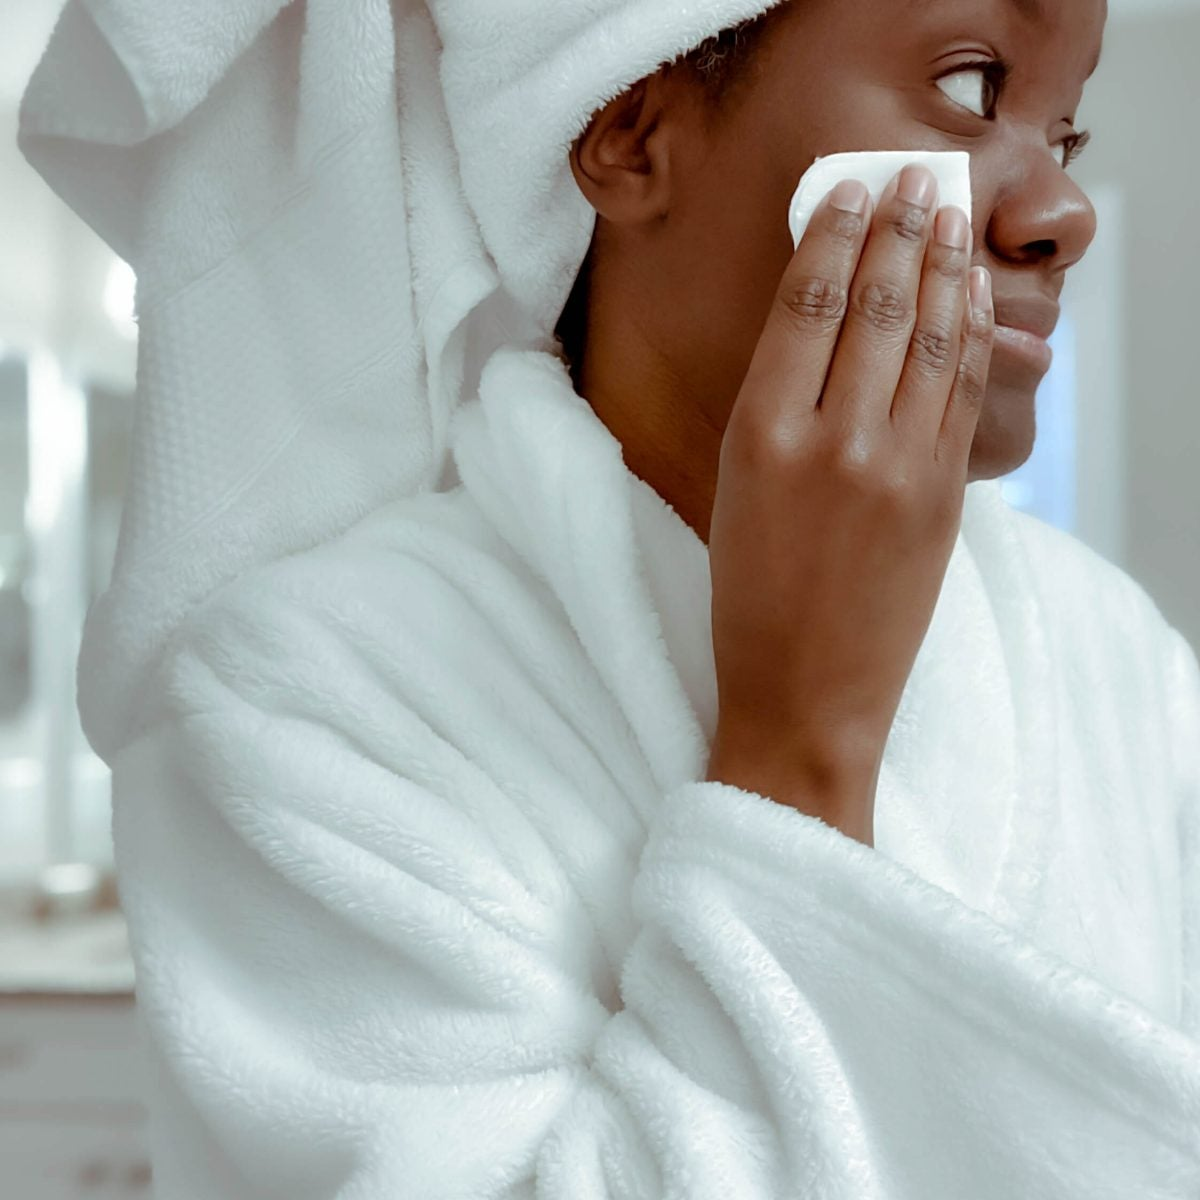 Healthy SKINteractions: Tips On How To Navigate Your Dermatologist Appointment And Ask The Right Questions